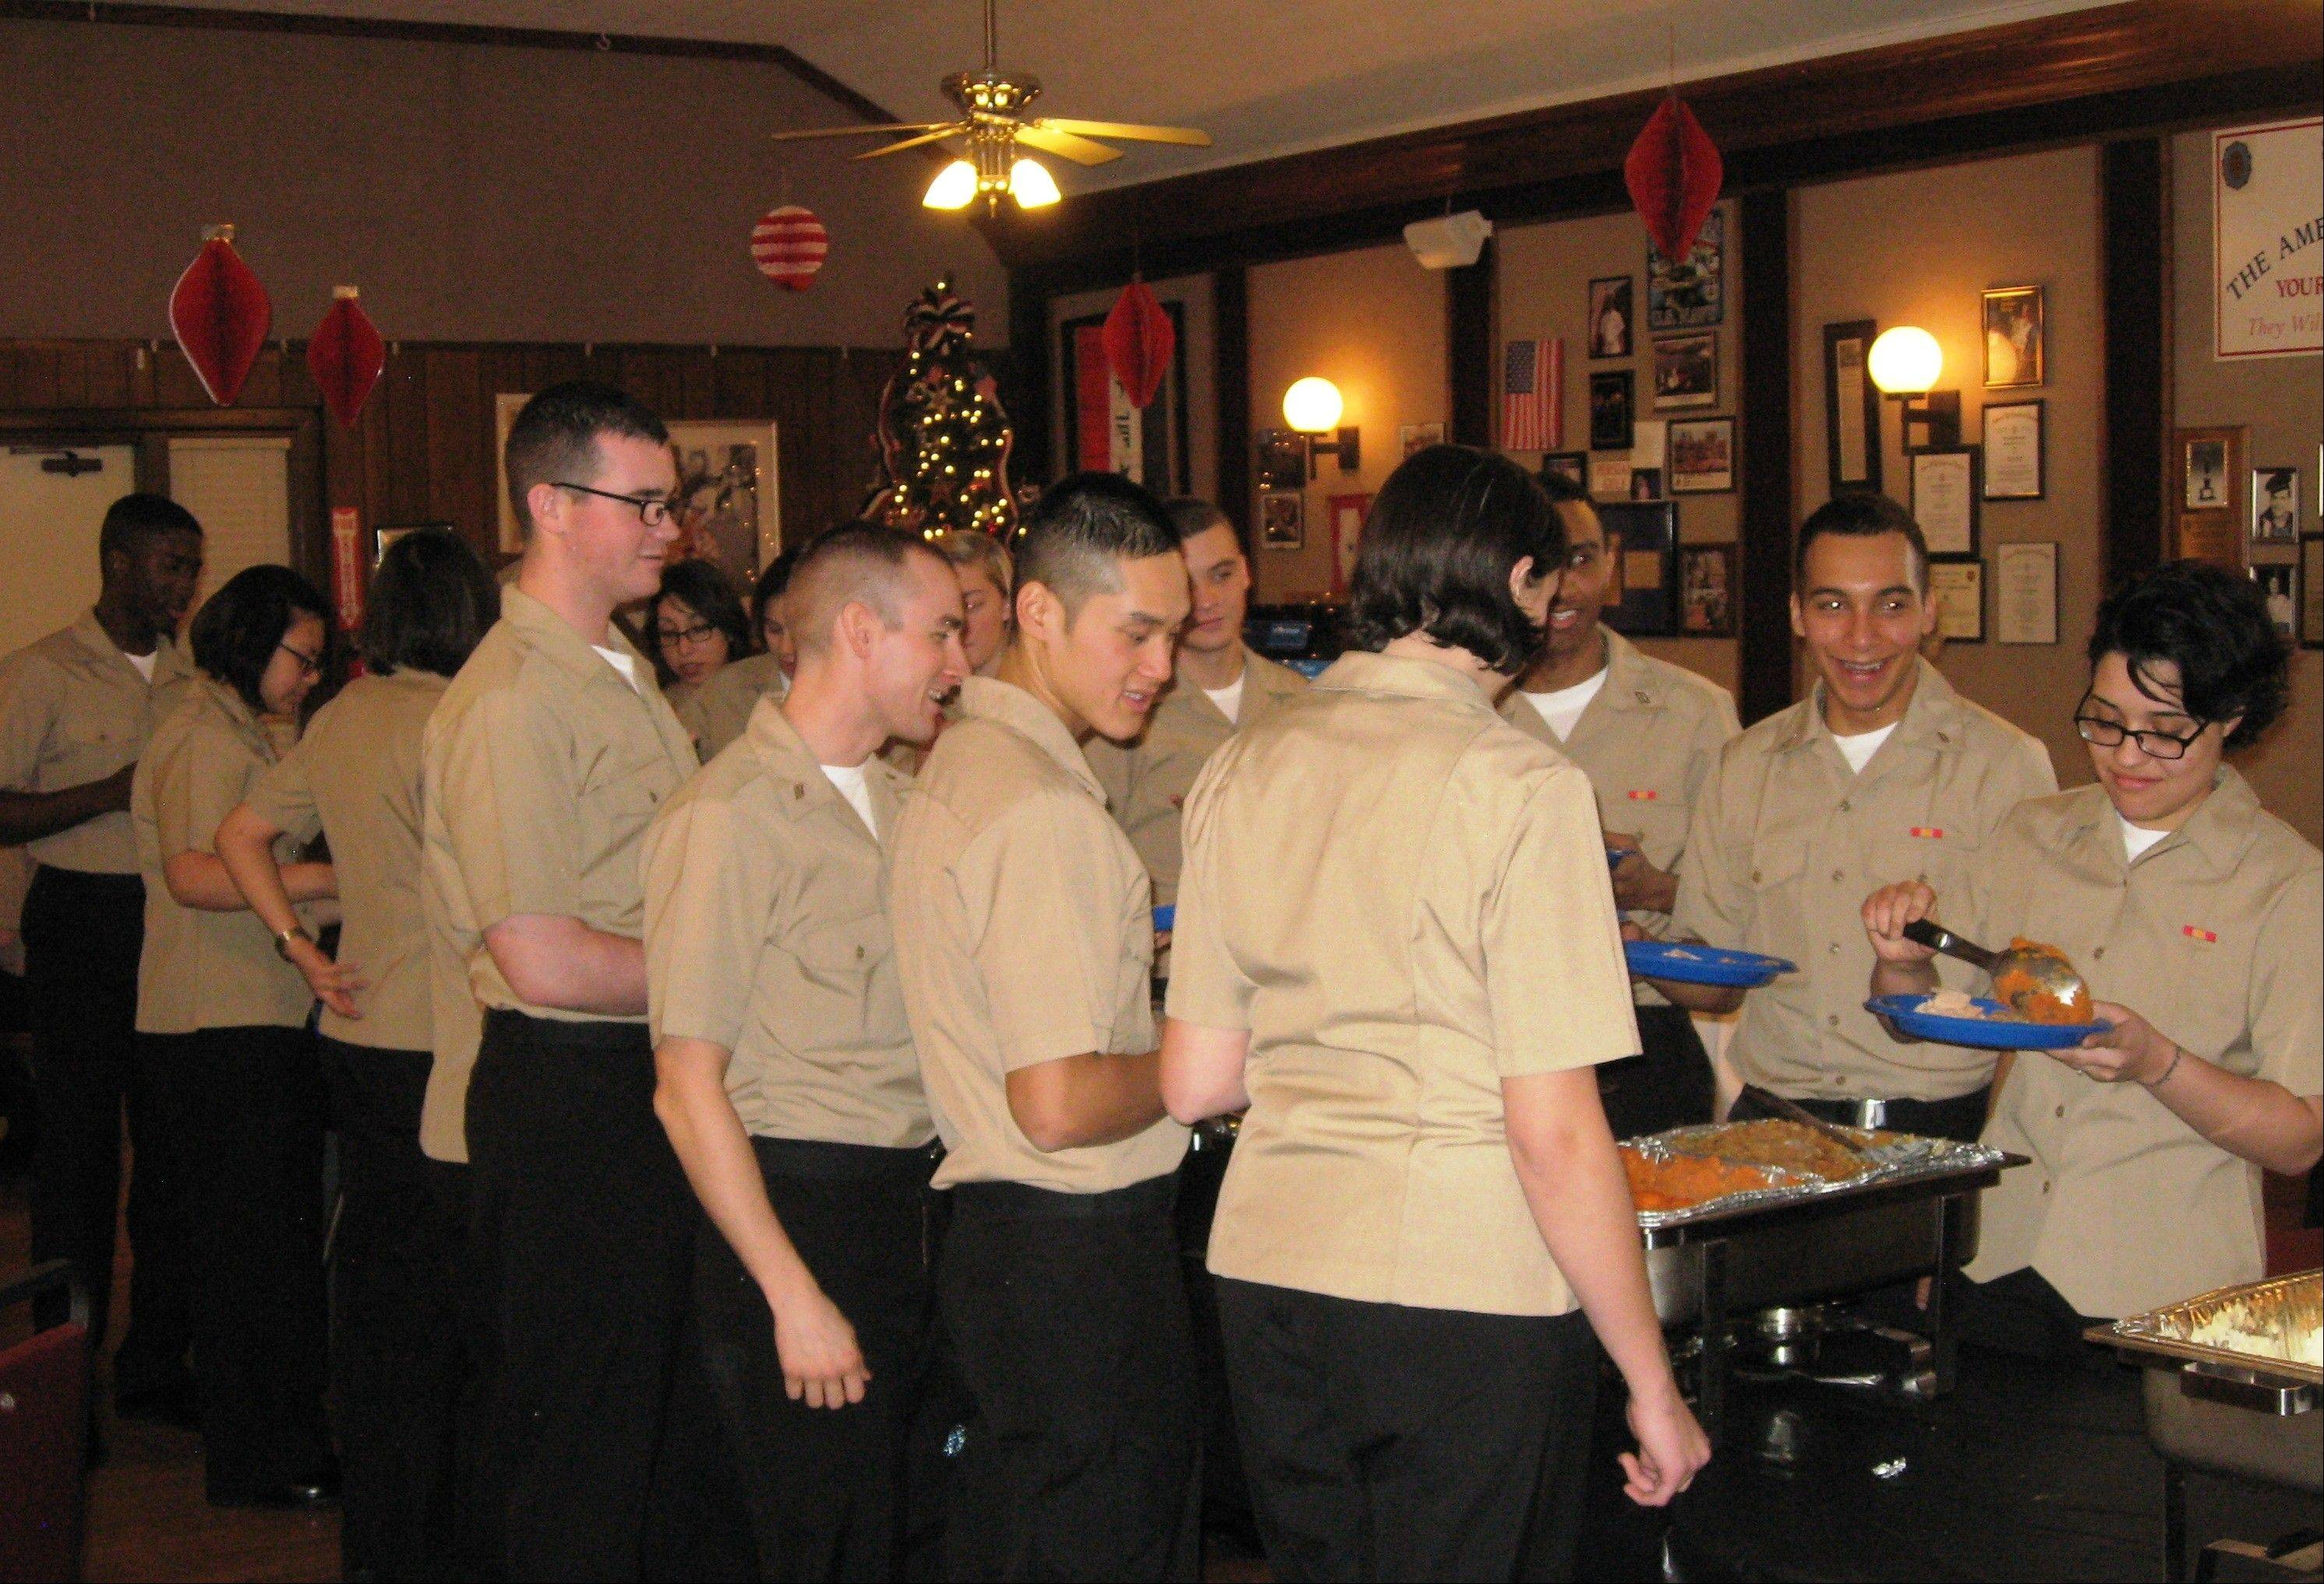 Naval recruits from Great Lakes Naval Training Center dig into a Thanksgiving dinner, with all the trimmings, courtesy of American Legion Post 208 in Arlington Heights.